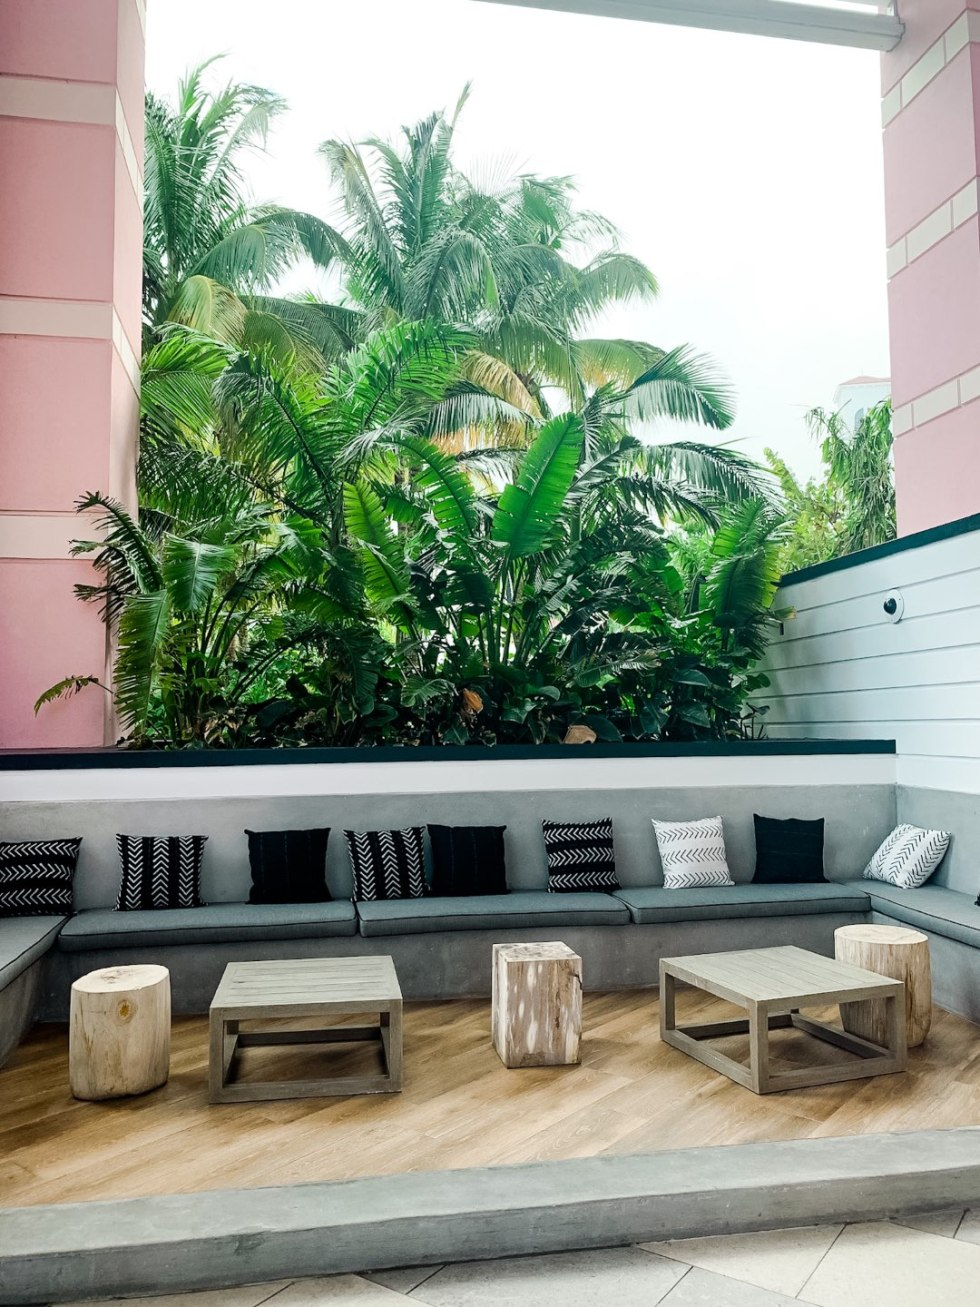 Warming Up in the Bahamas: the Best Things to Do at Baha Mar - I'm Fixin' To - @mbg0112 | Warming Up in the Bahamas: the Best Things to Do in Baha Mar by popular North Carolina travel blog, I'm Fixin' To: image of outside seating at Baha Mar.